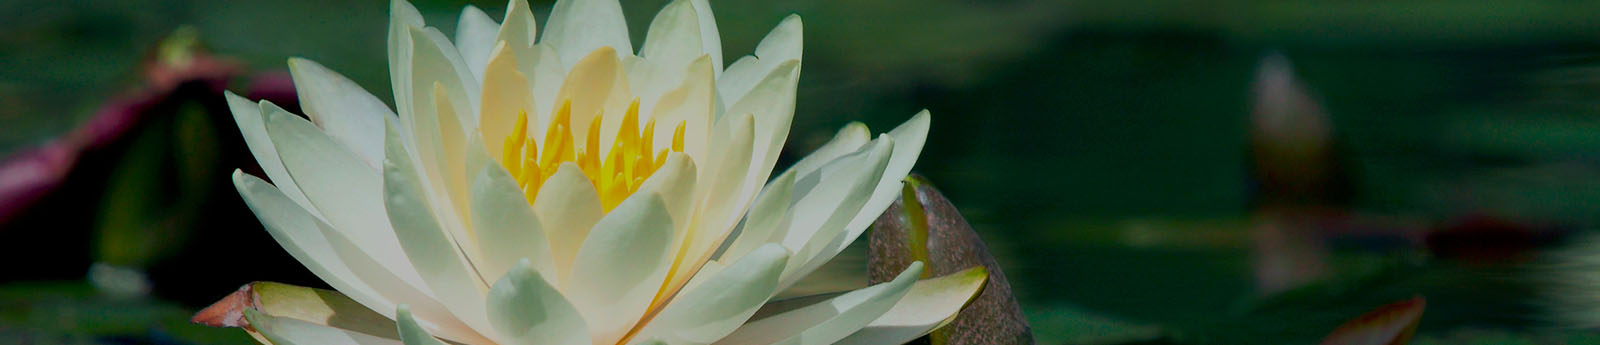 Resources | Kemp Funeral Home & Cremation Services